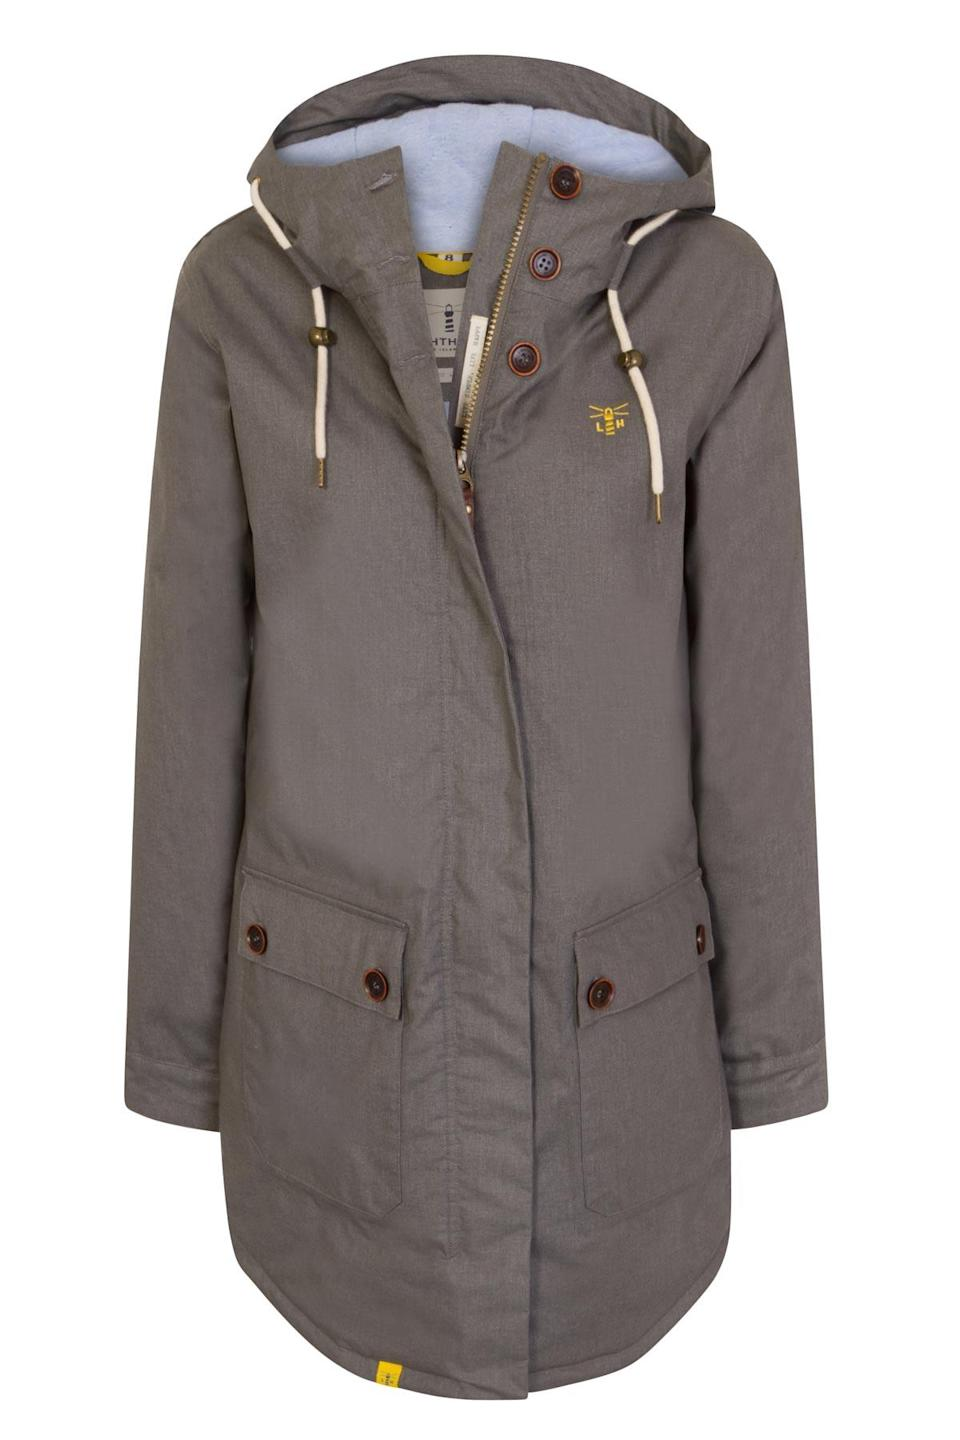 """<p>£110, <a rel=""""nofollow noopener"""" href=""""https://www.lighthouseclothing.co.uk/collections/womens-raincoats-jackets/products/florence-waterproof-breathable-warm-mid-thigh-parka-grey"""" target=""""_blank"""" data-ylk=""""slk:Lighthouse"""" class=""""link rapid-noclick-resp"""">Lighthouse</a>. </p>"""